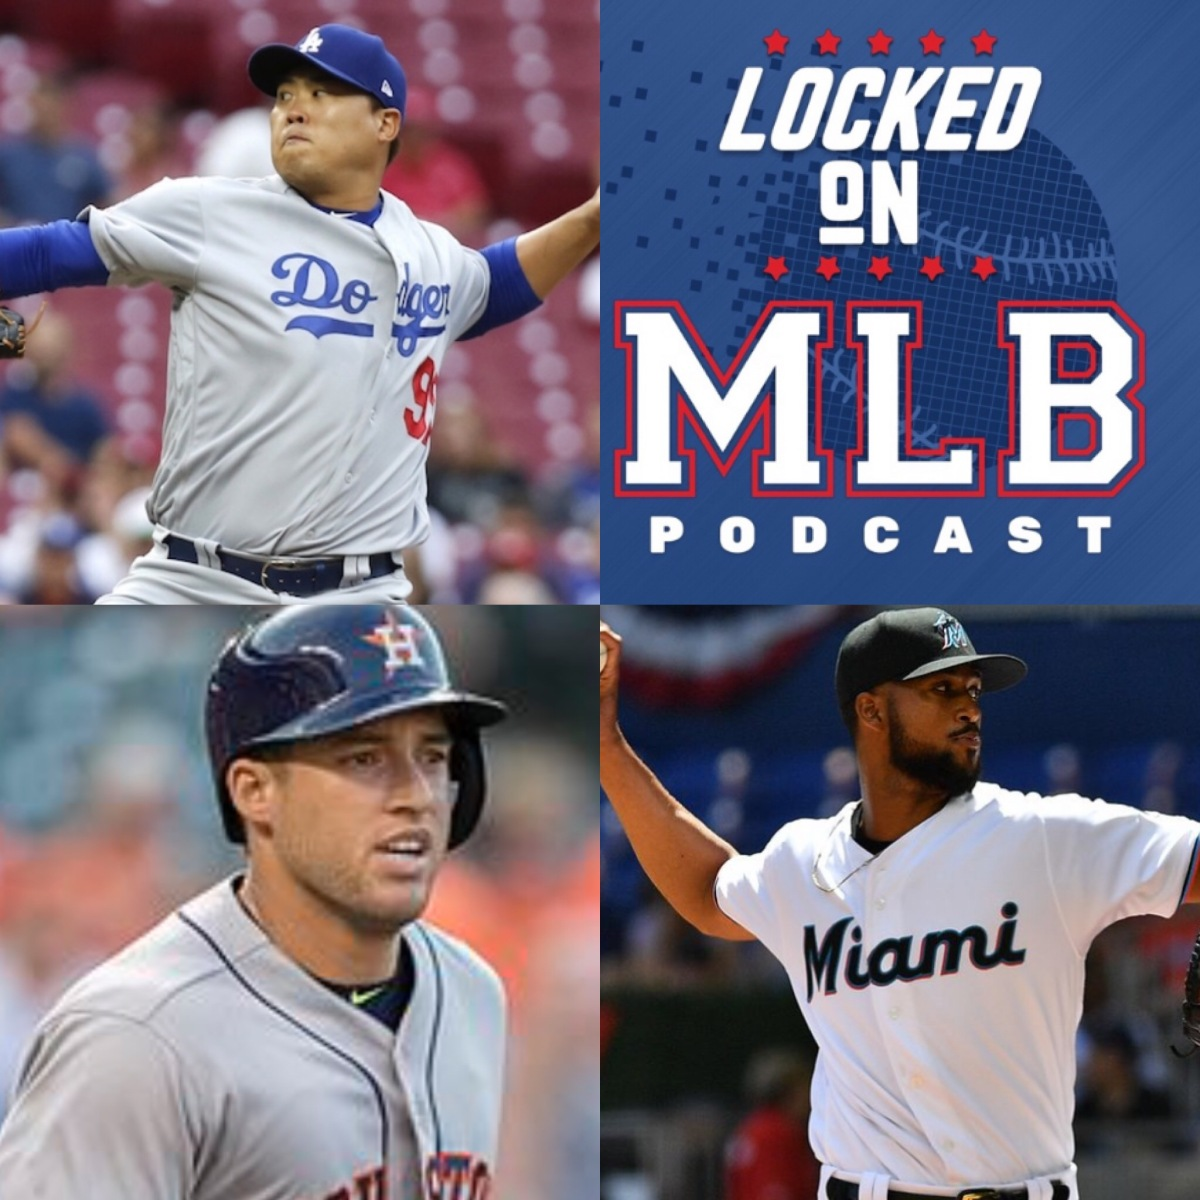 The West Has Been Won While the East Is a Mess - Locked On MLB Podcast, May 20, 2019